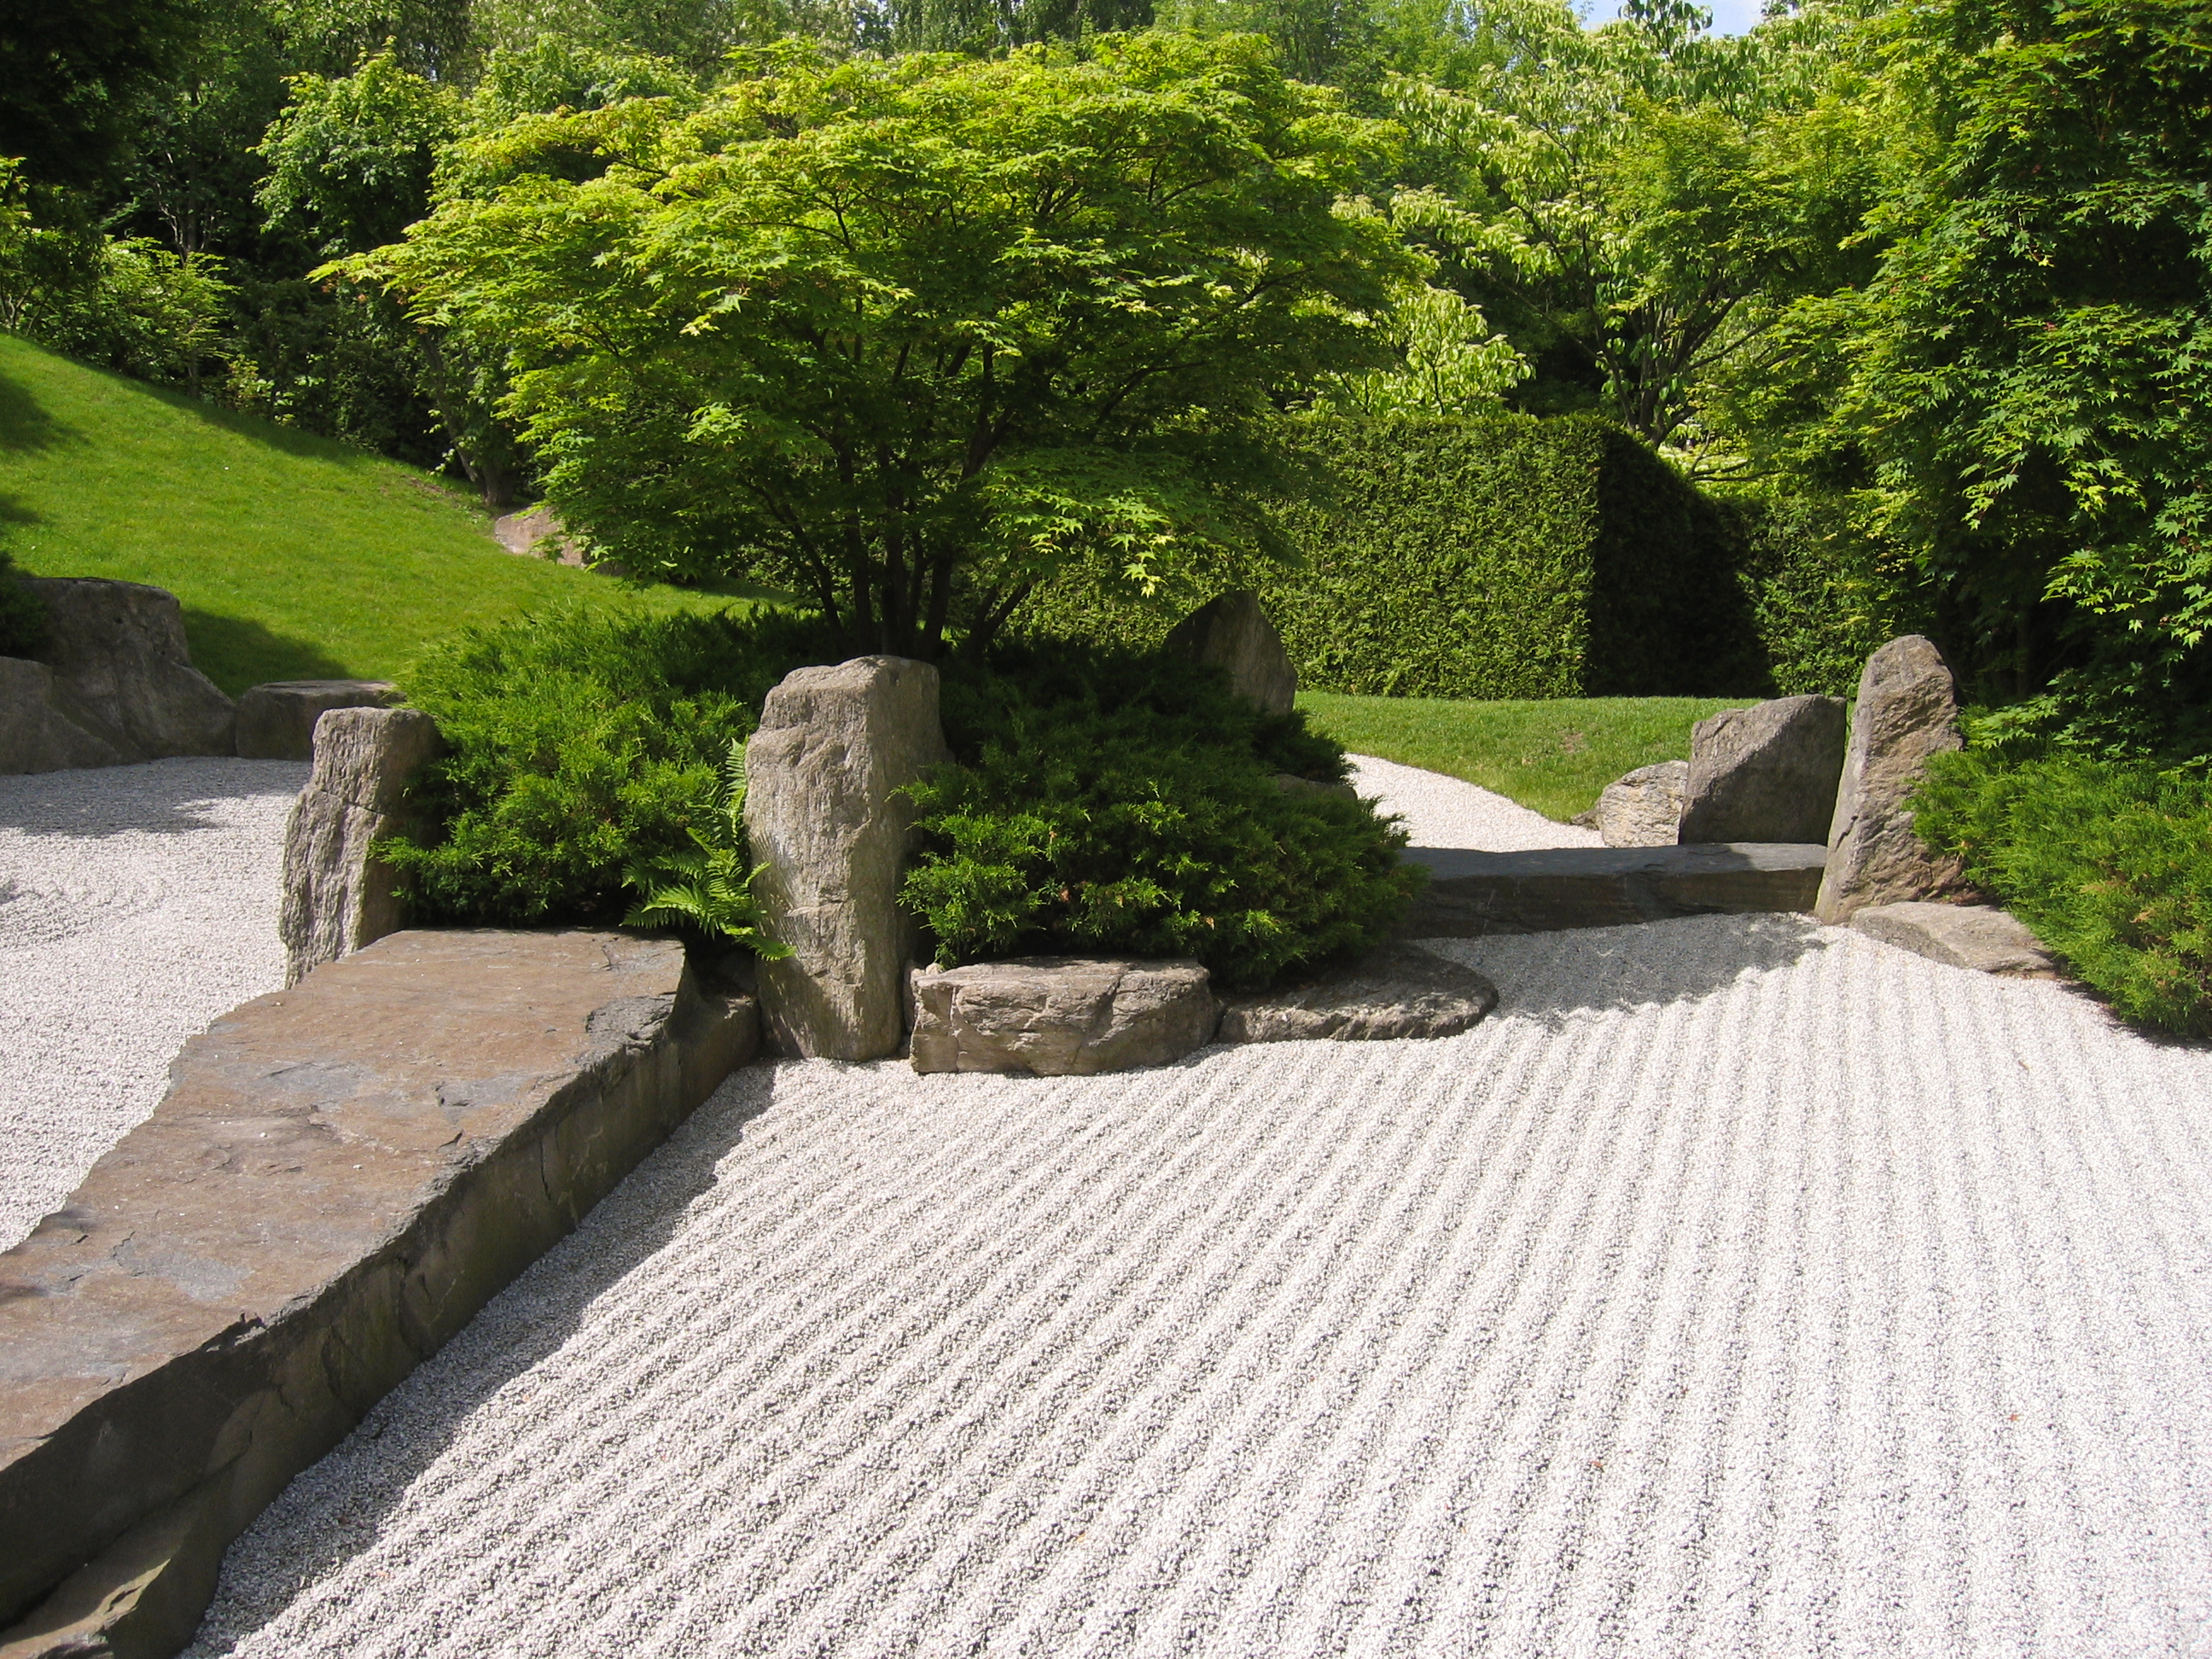 Garden design common garden stylesse landscape for Japanese garden designs